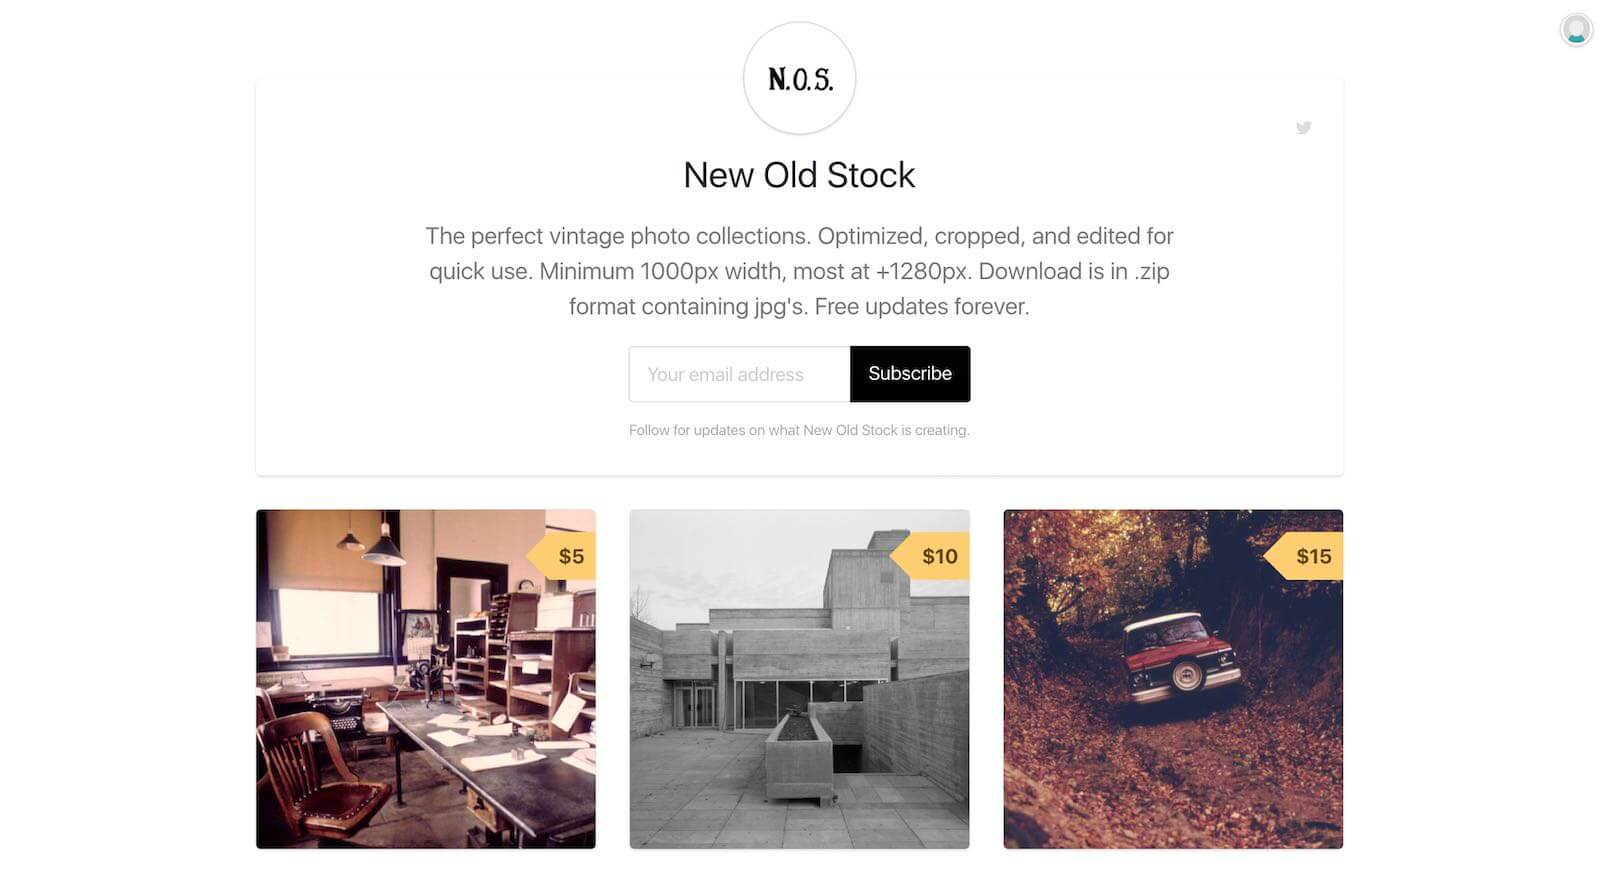 13-Best-Stock-Photo-Sites-for-Creative-Agencies-11.-New-Old-Stock